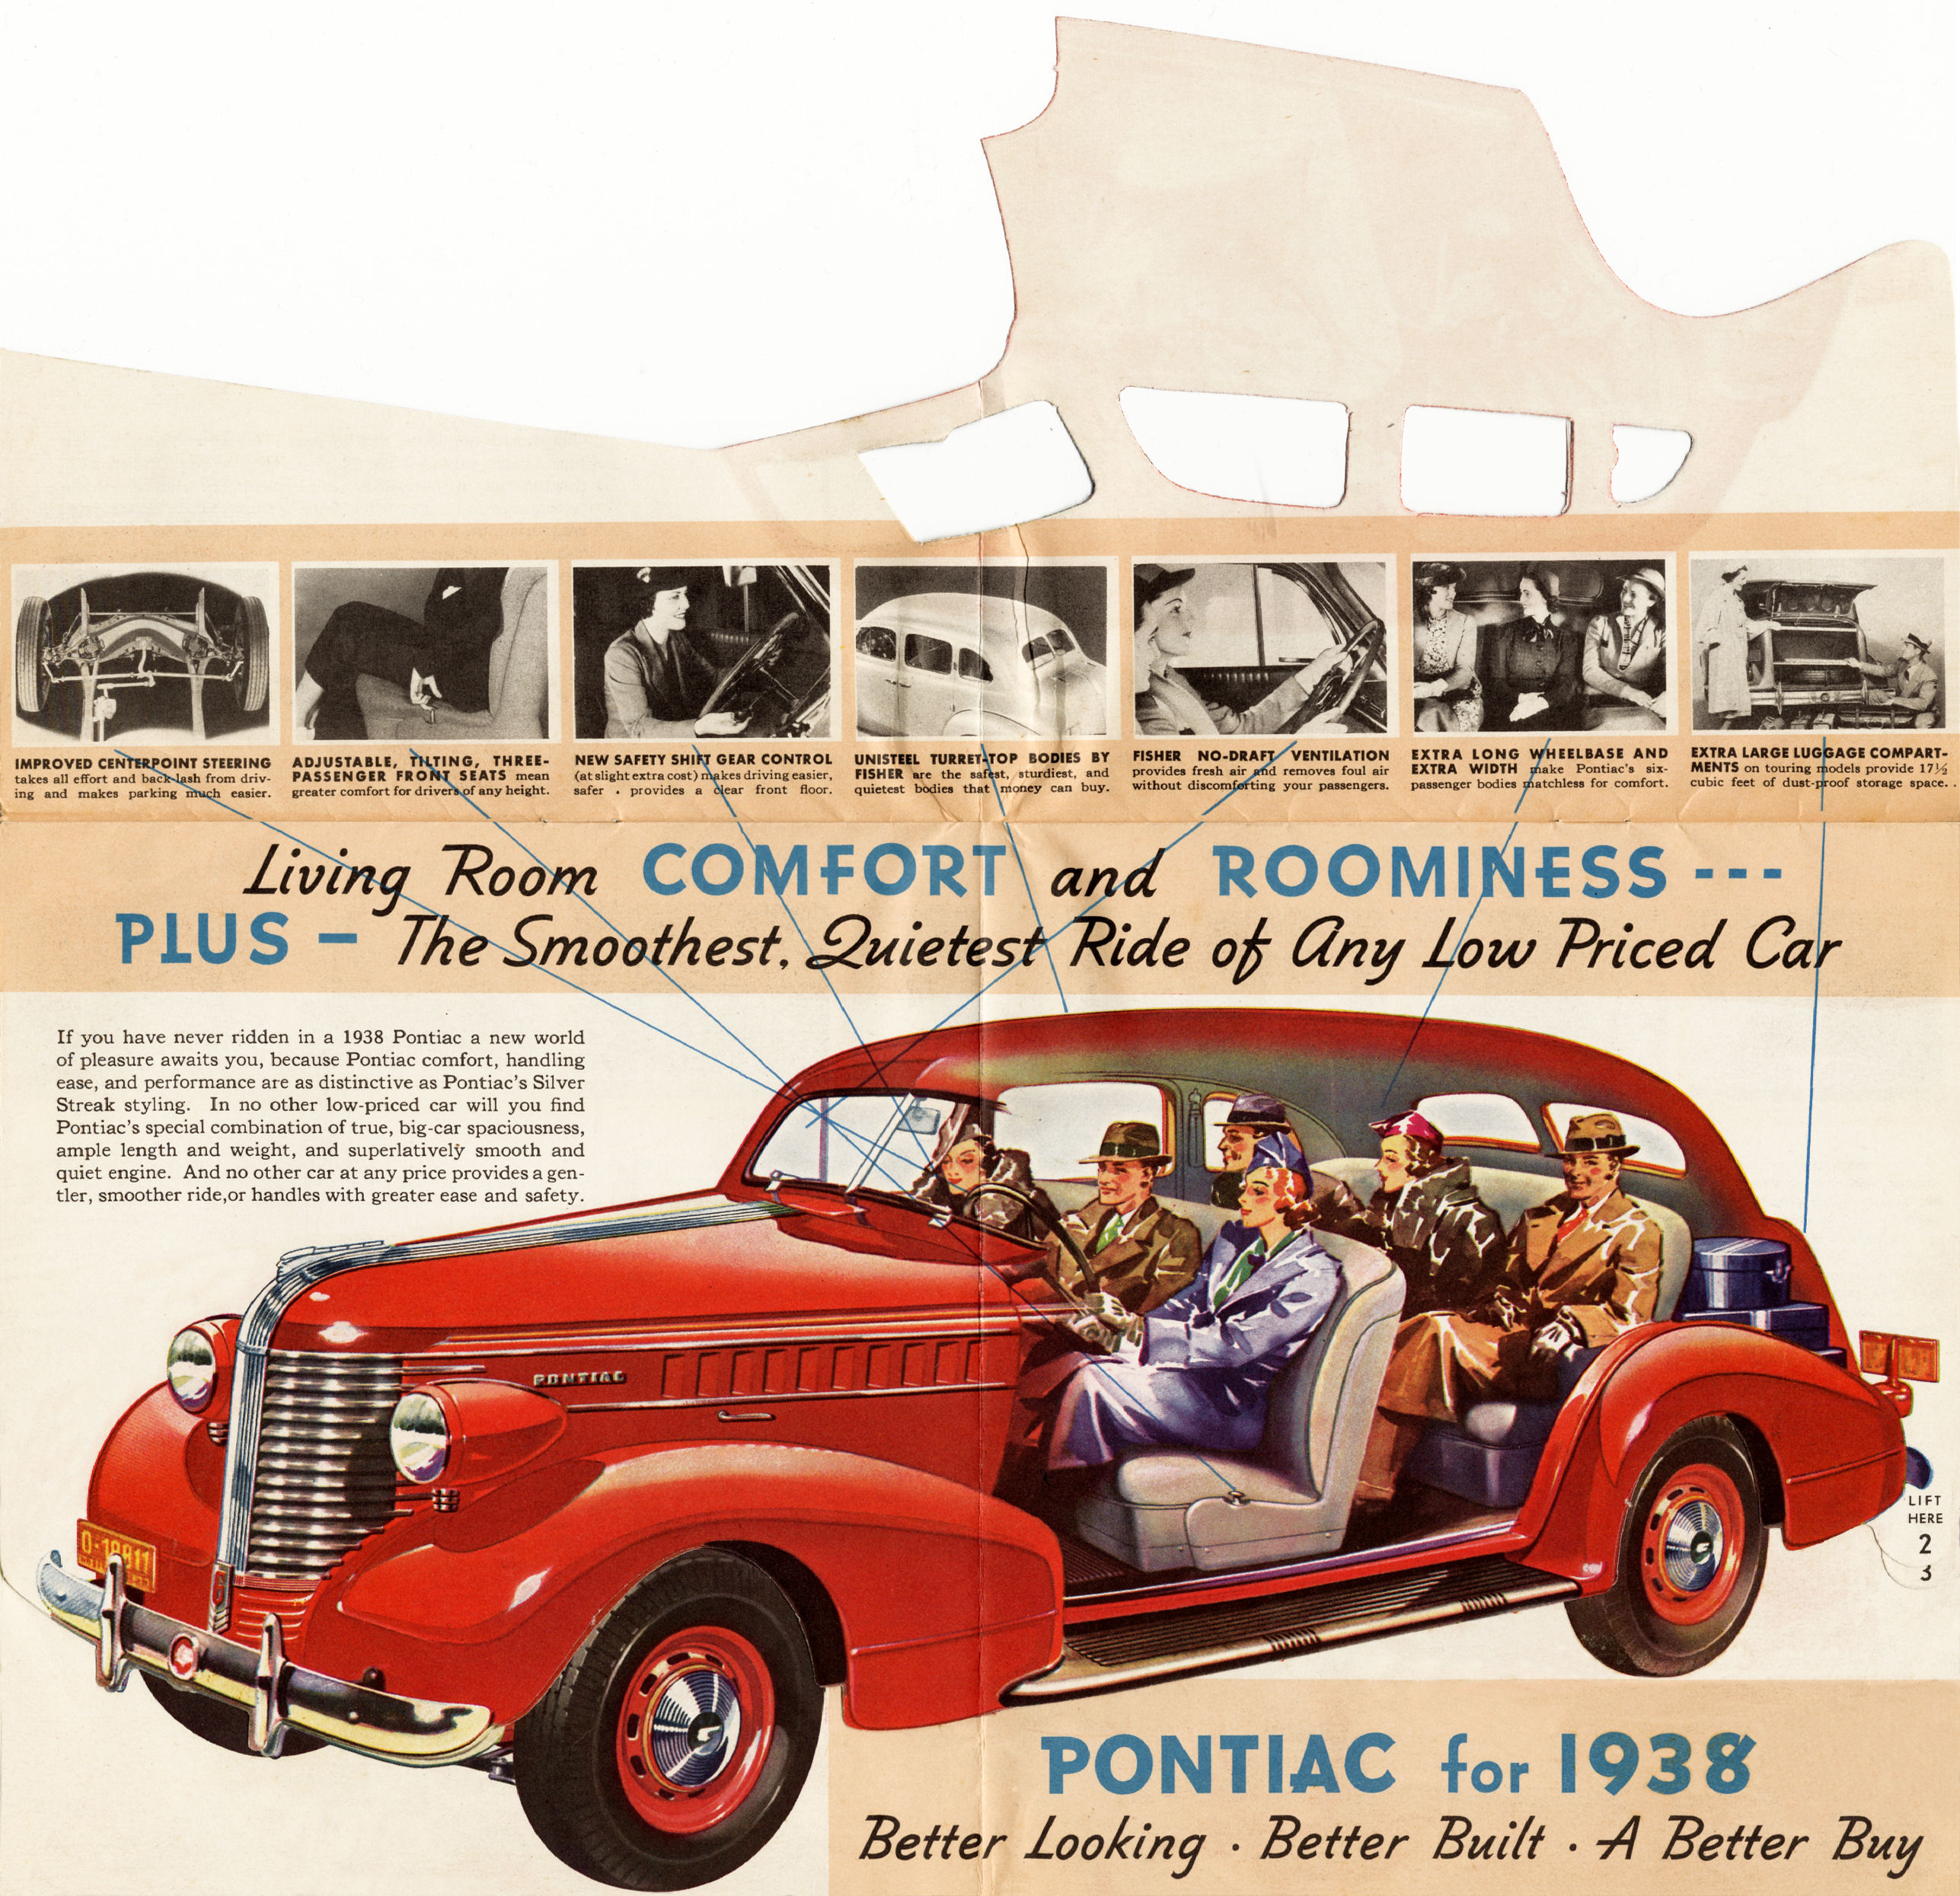 Old Car Dealers >> Directory Index: Pontiac/1938 Pontiac/1938_Pontiac_Inside_Story_Foldout